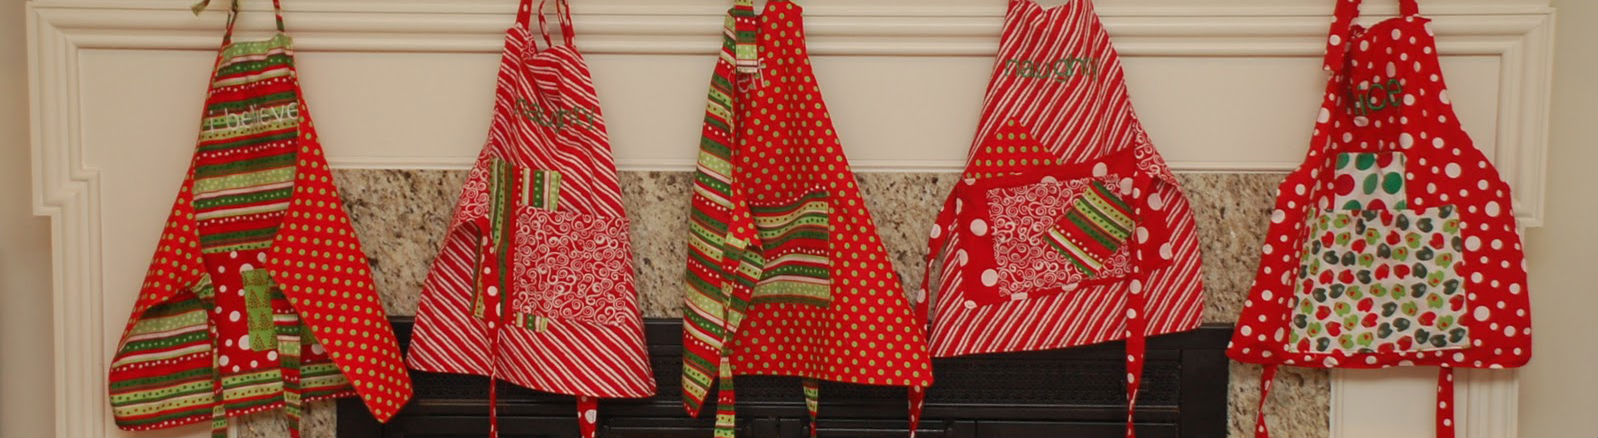 SUNDAY SOLILOQUY Christmas Aprons – this is a heartwarming story you will want to share